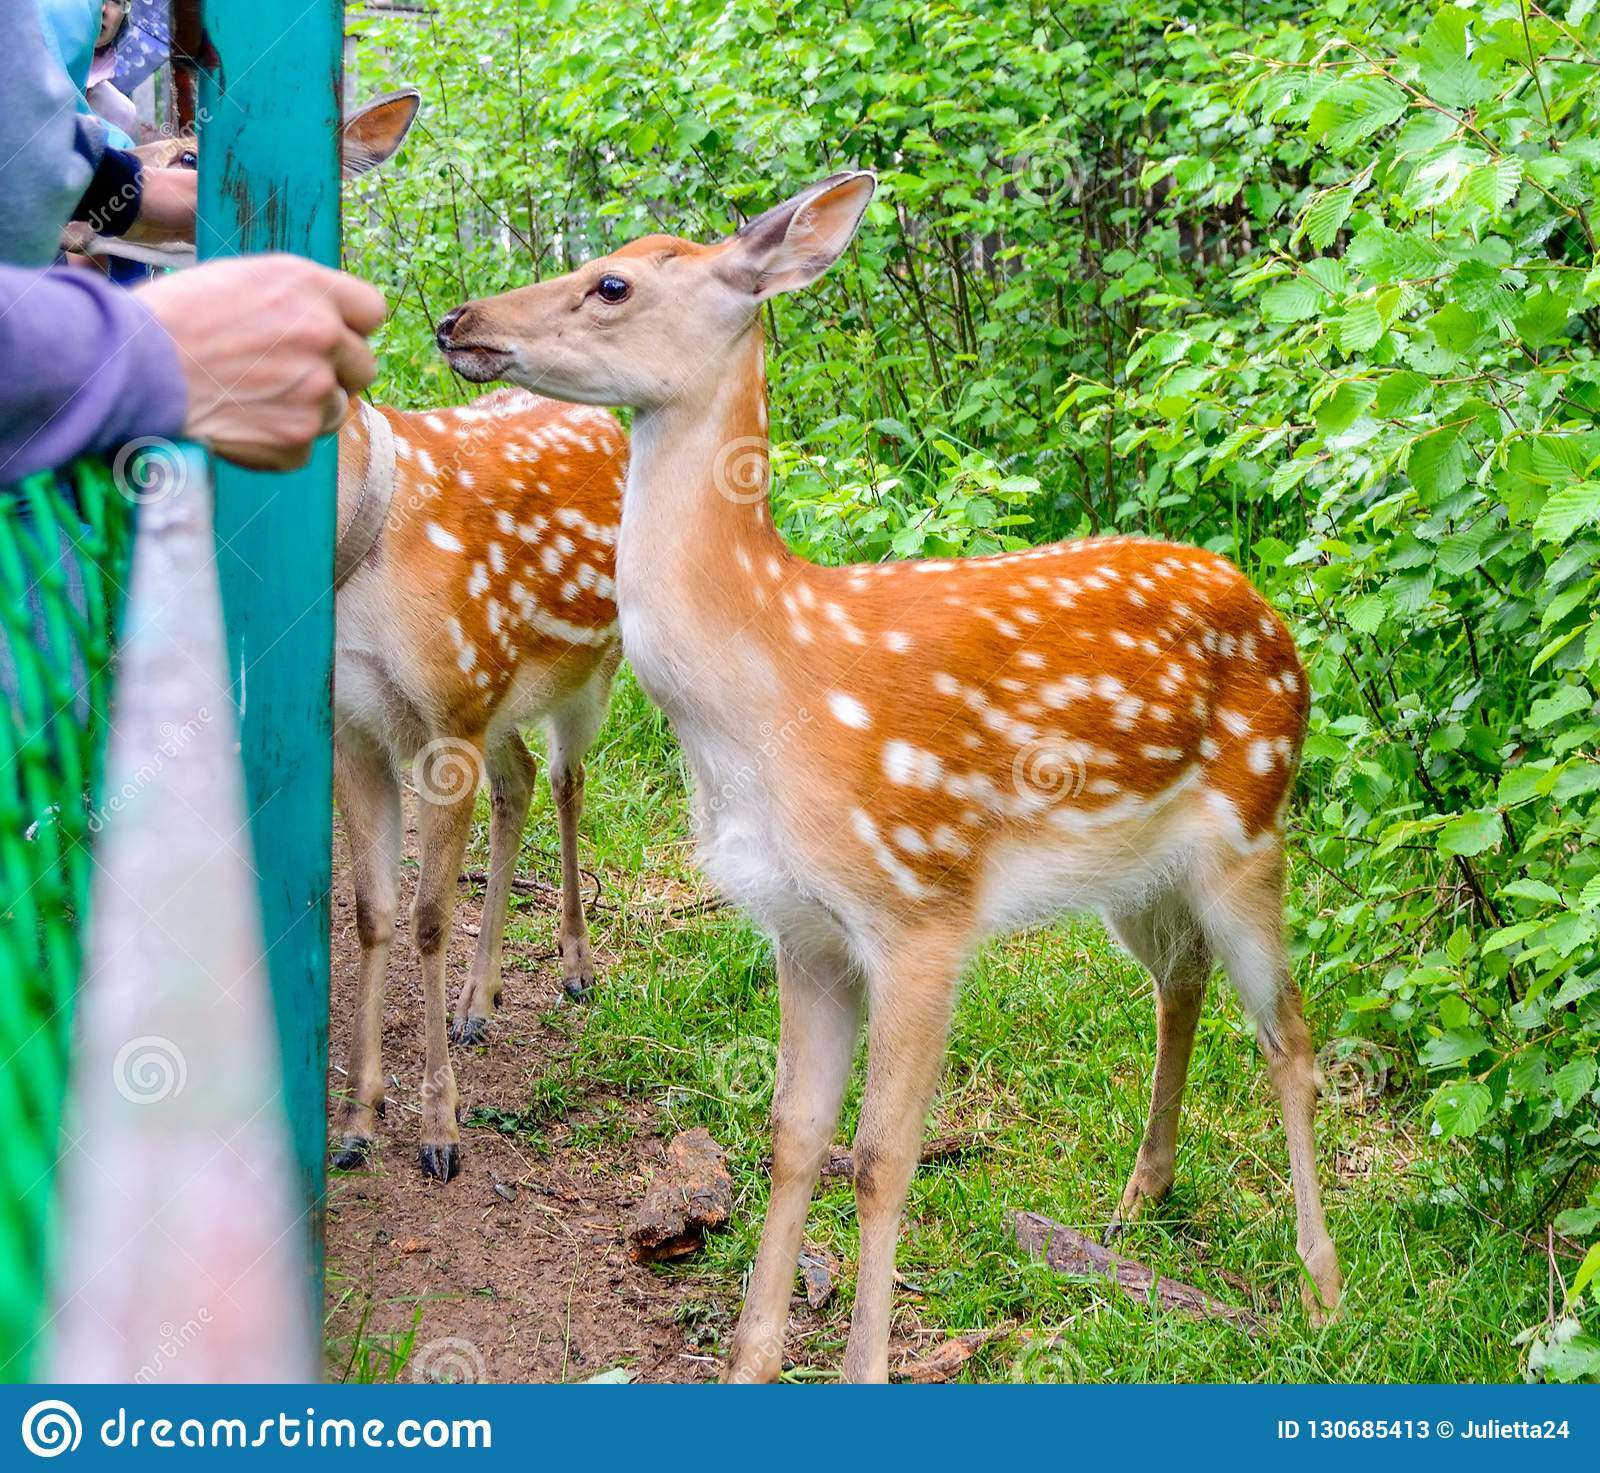 People feed the red deer from the hands